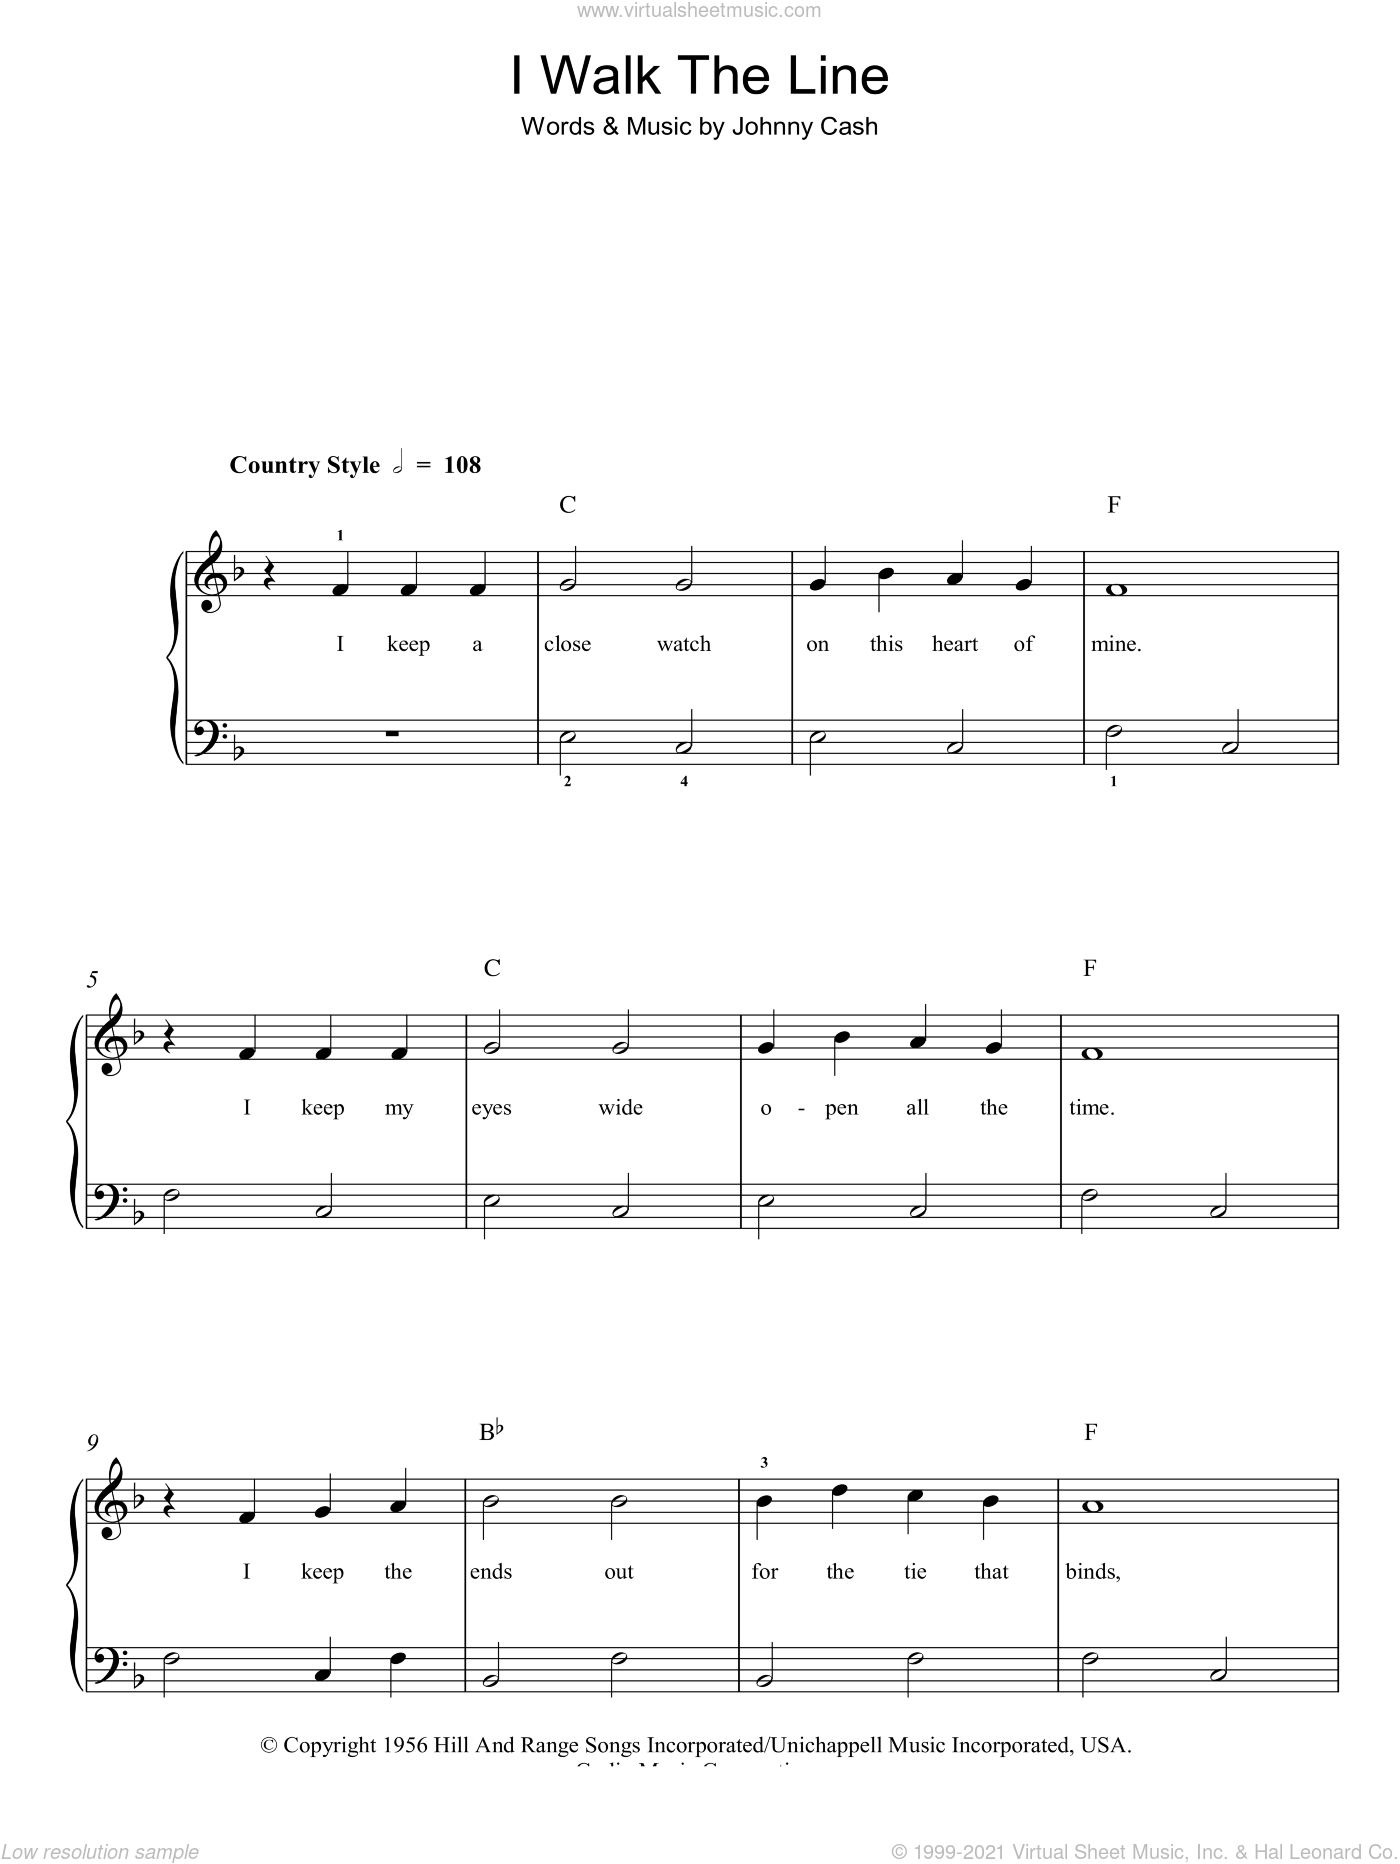 I Walk The Line sheet music for piano solo by Johnny Cash, easy skill level